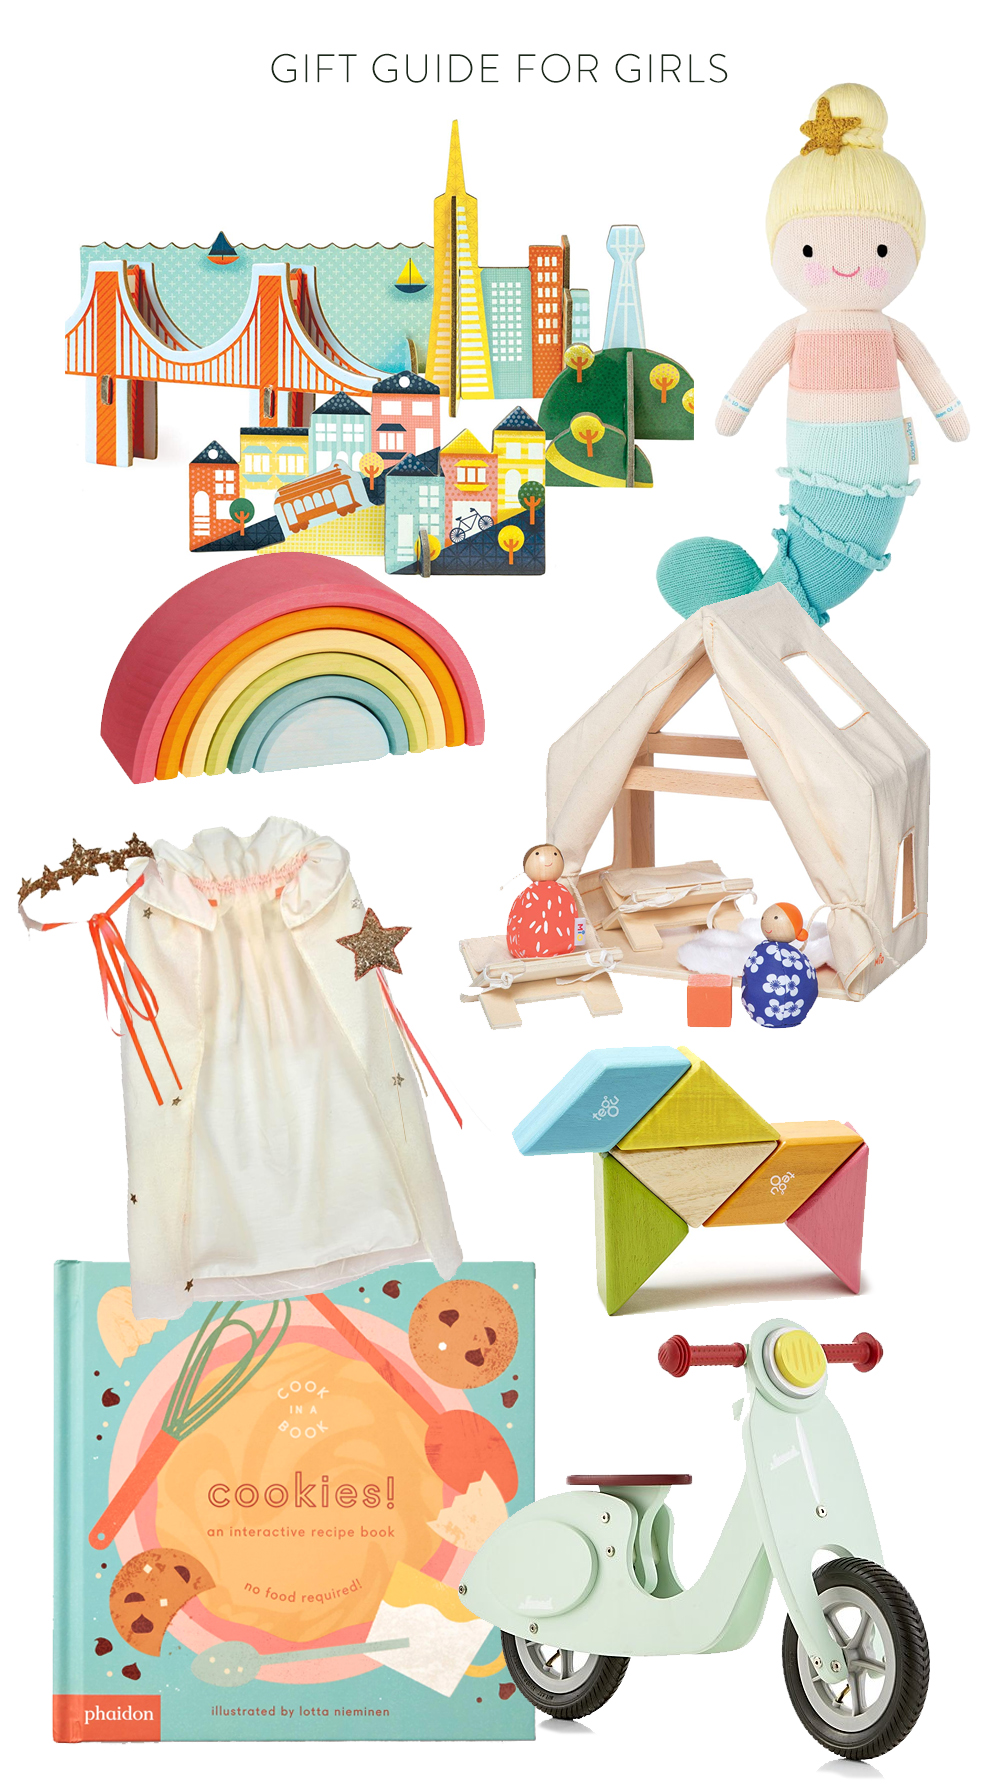 1.  San Francisco pop-out city  | 2.  Cuddle + Kind Mermaid  | 3.  teepee + Doll Set  | 4.  Stacking wooden rainbow  | 5.  Princess Dress-up Kit  | 6.  Tegu Blocks  | 7.  Cookie book  | 8.  Ride-on moped